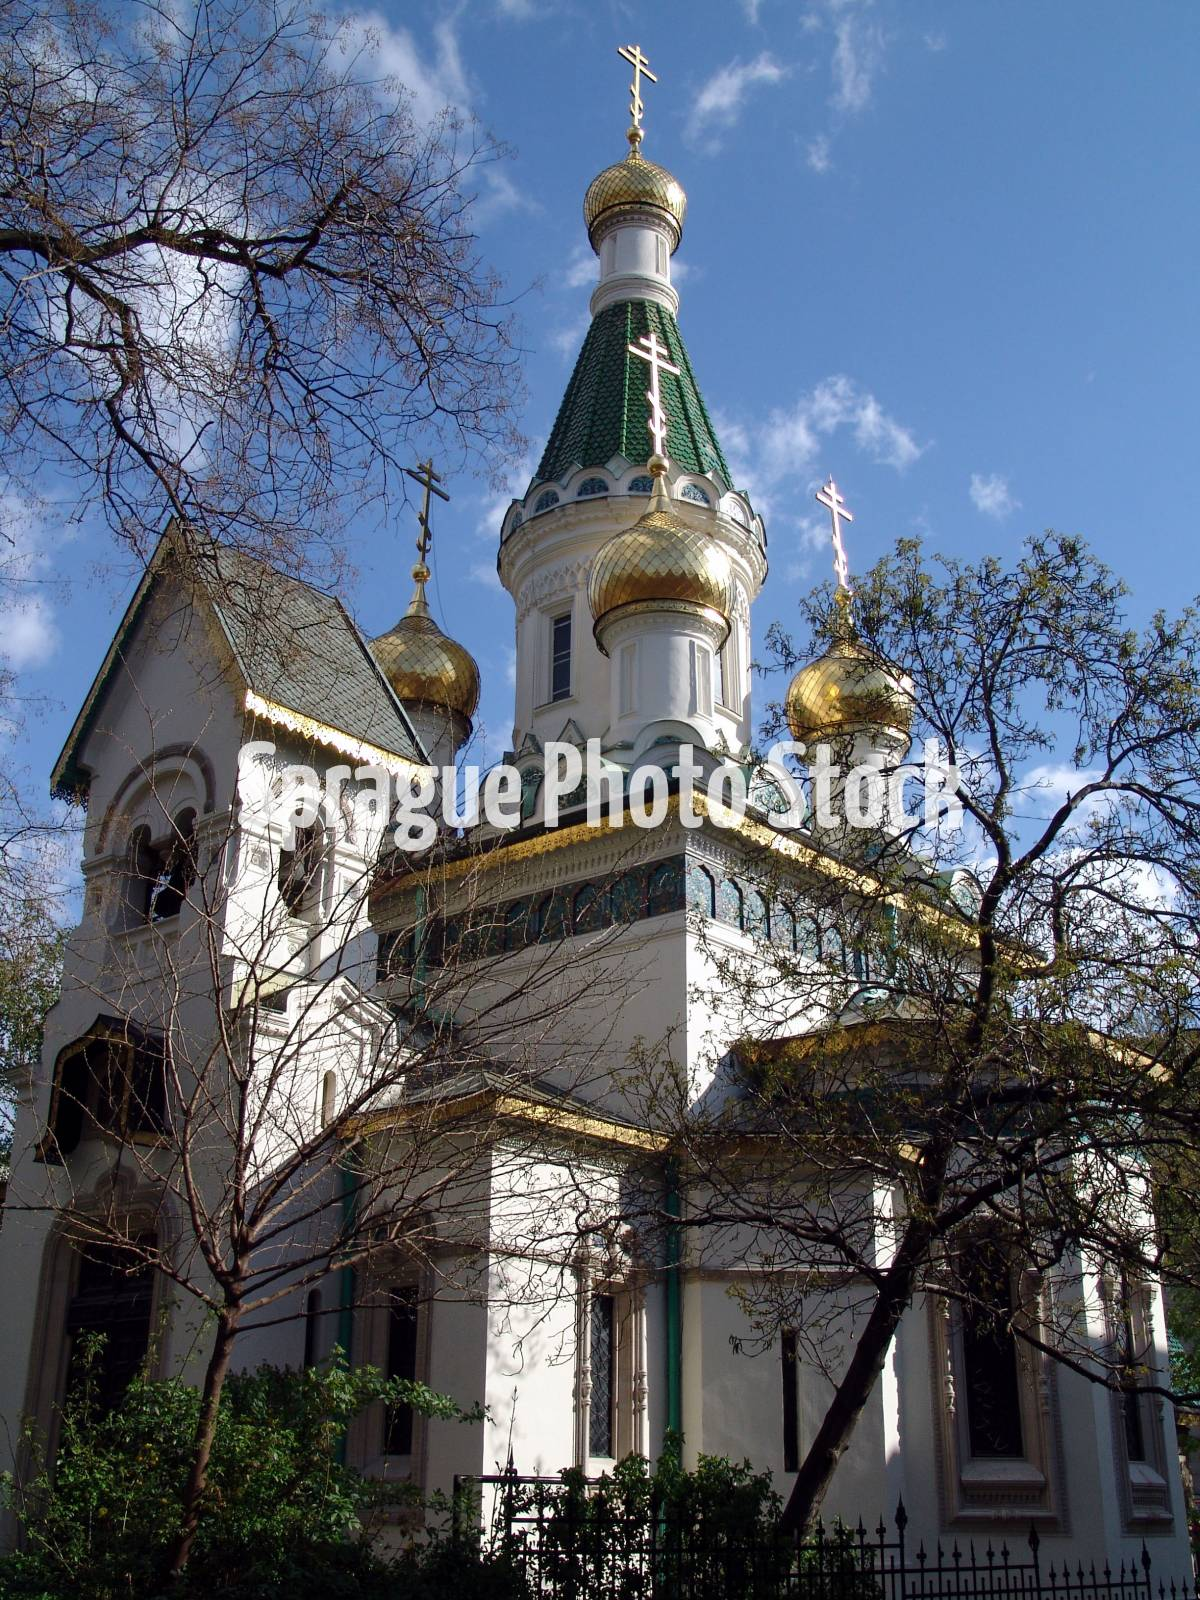 Saint Nikolai Russian Orthodox church, Sofia, Bulgaria.